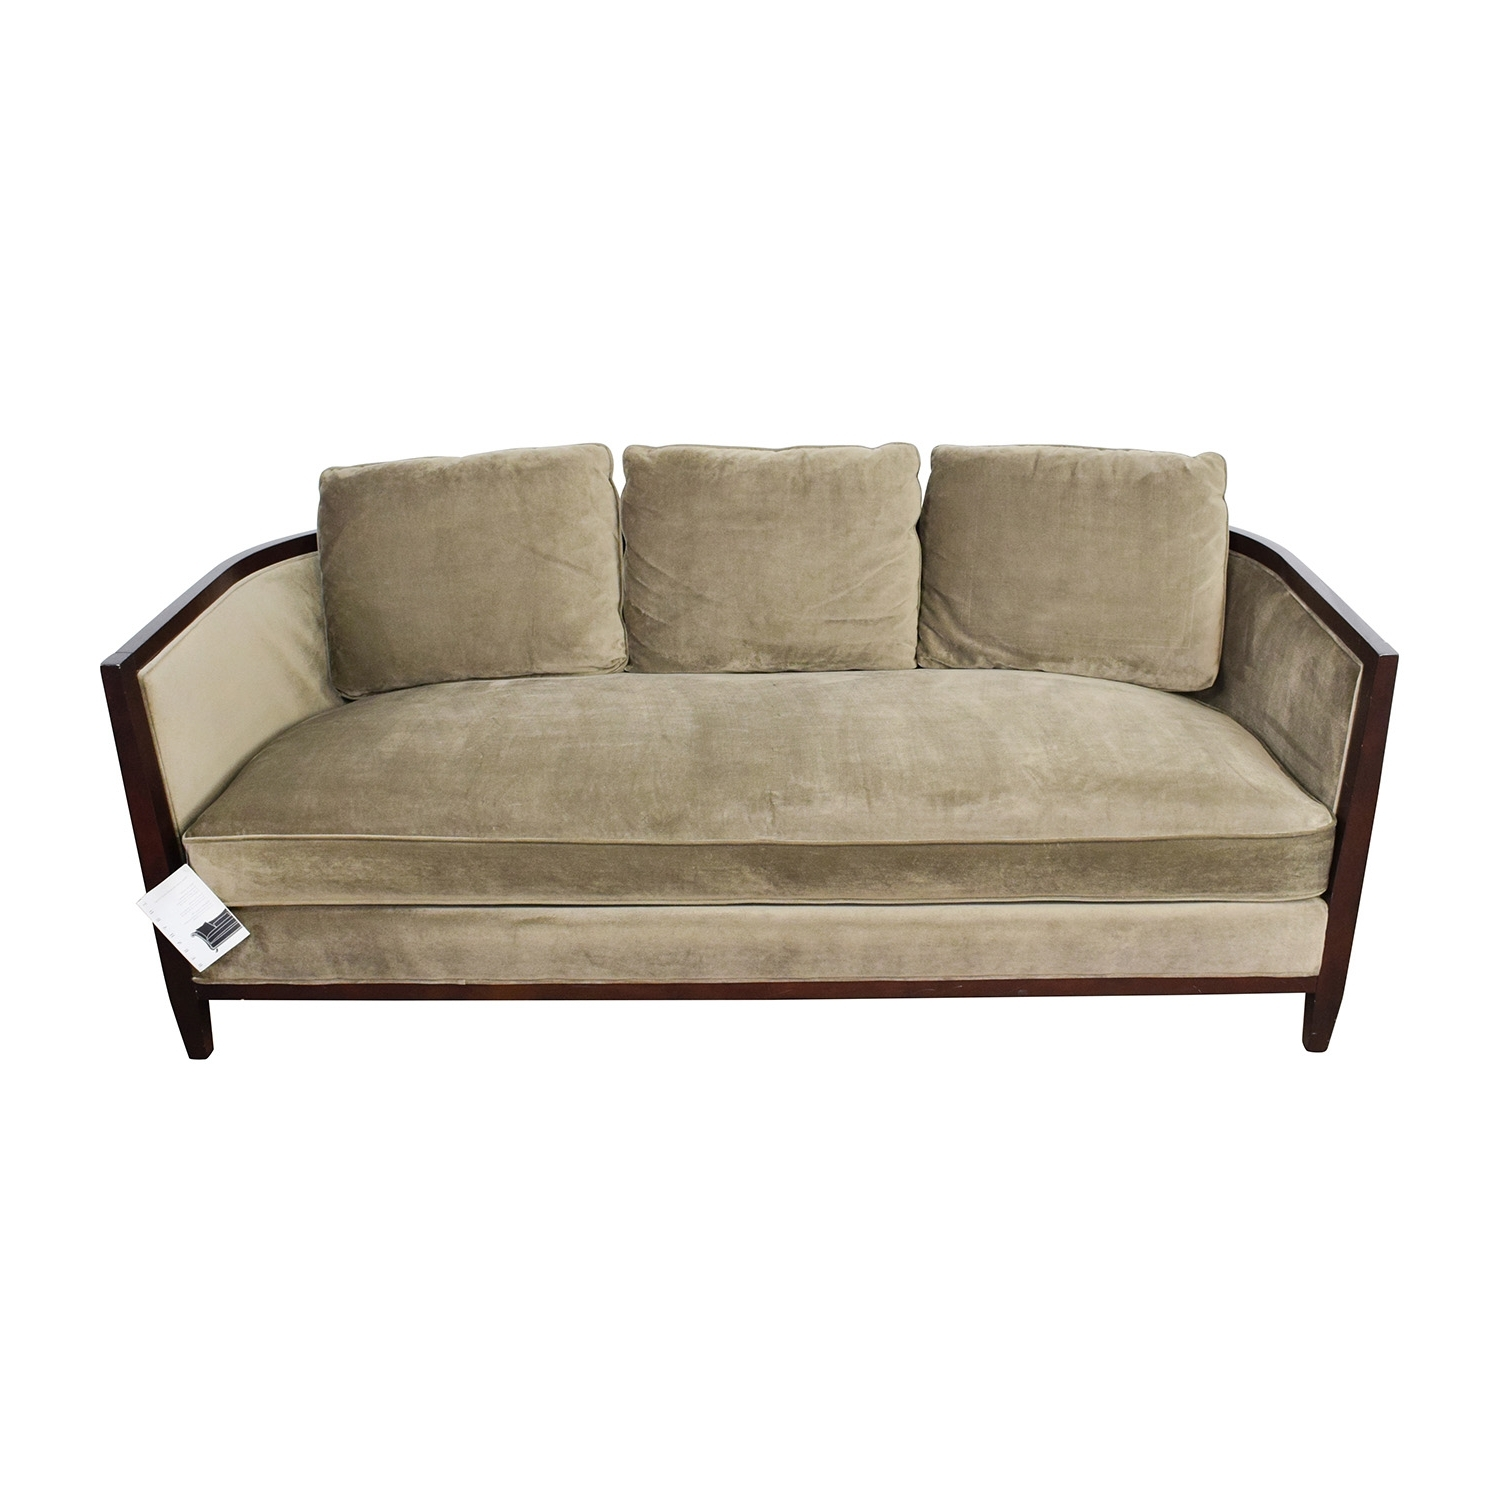 [%85% Off – Bernhardt Bernhardt Tan Single Cushion Sofa / Sofas Throughout Most Popular Single Sofas|Single Sofas Throughout Most Recent 85% Off – Bernhardt Bernhardt Tan Single Cushion Sofa / Sofas|Most Up To Date Single Sofas With Regard To 85% Off – Bernhardt Bernhardt Tan Single Cushion Sofa / Sofas|Well Known 85% Off – Bernhardt Bernhardt Tan Single Cushion Sofa / Sofas For Single Sofas%] (View 2 of 20)